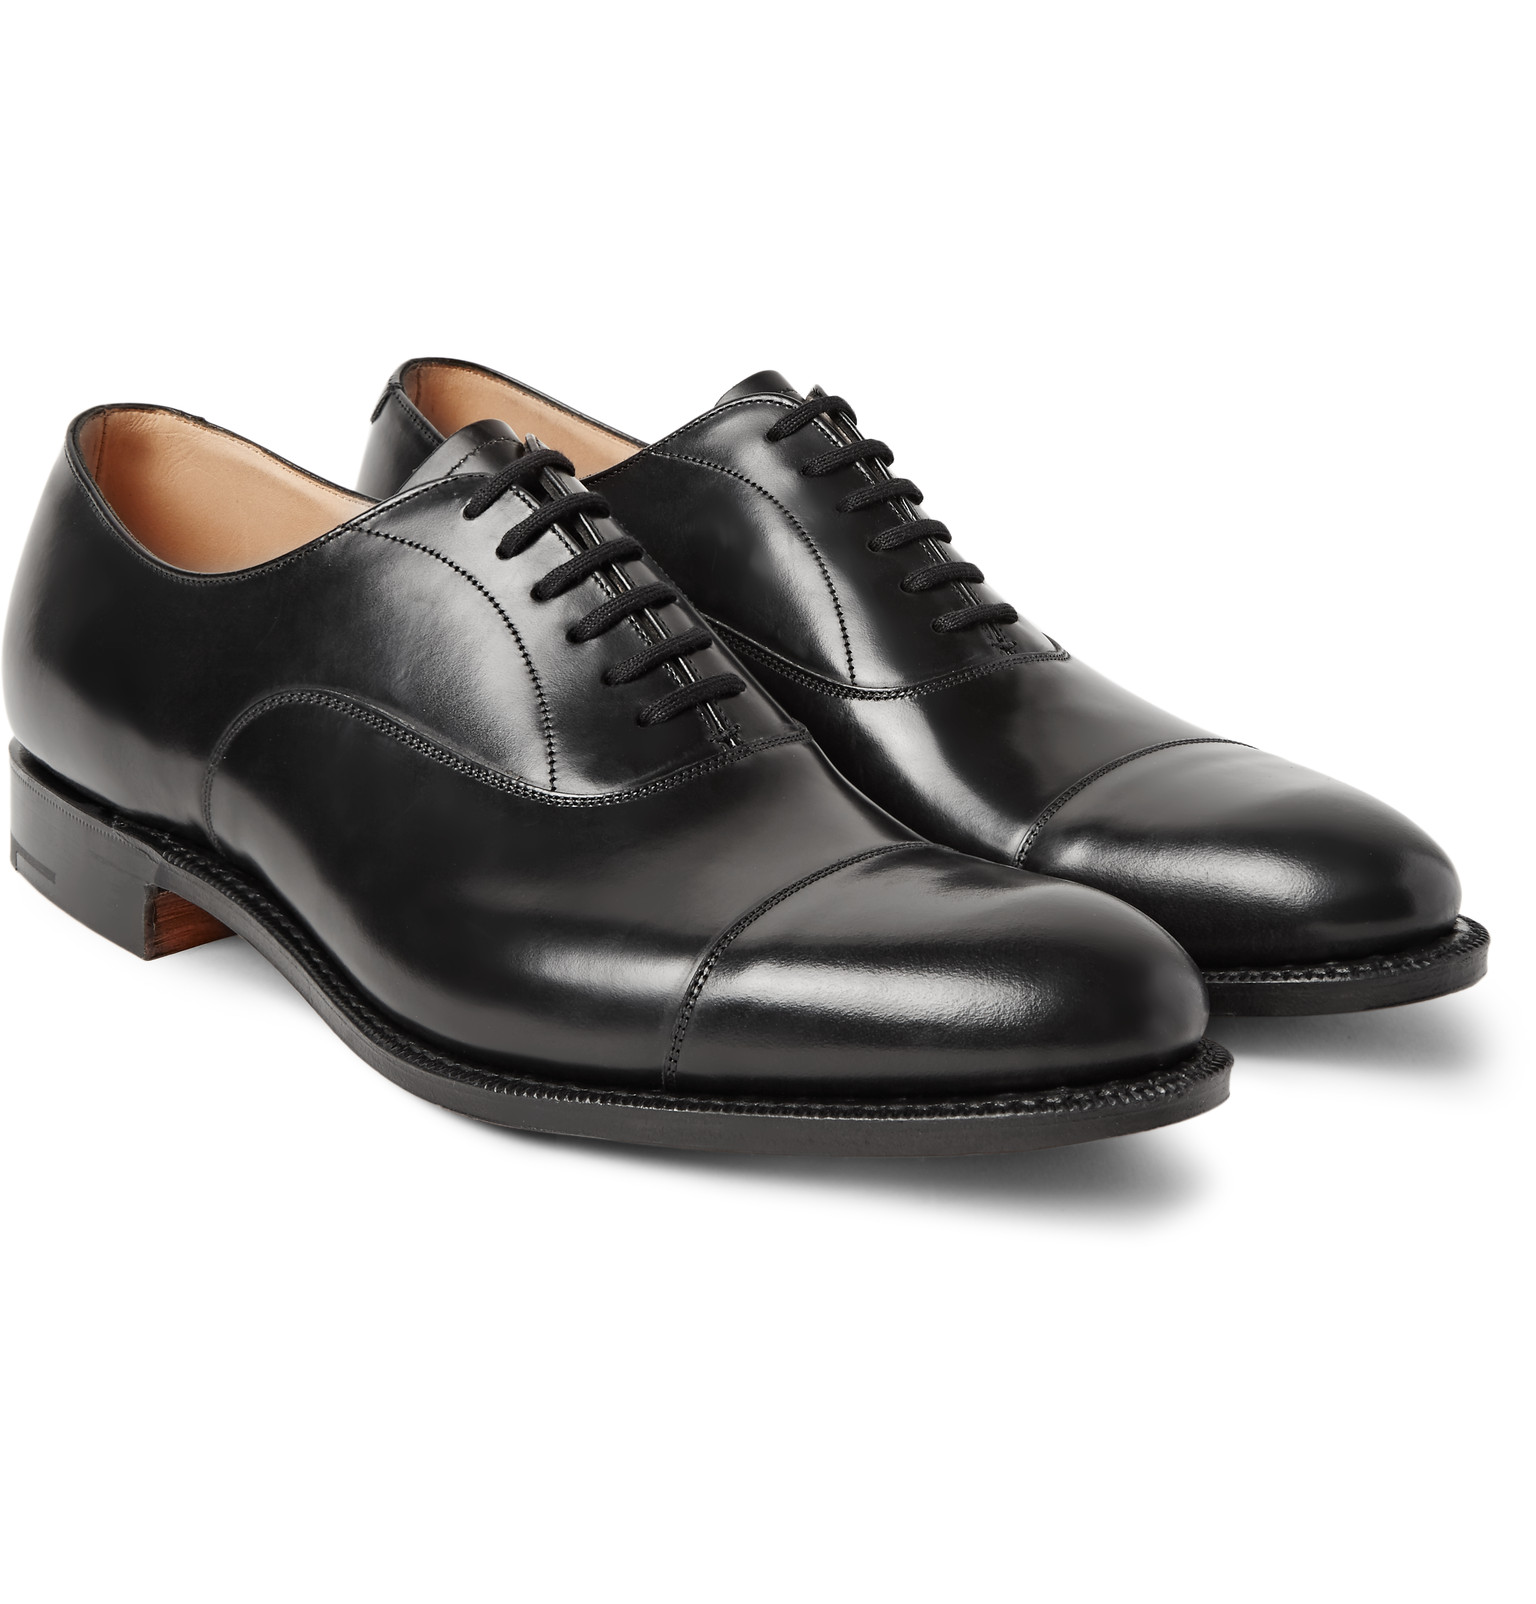 Styles of Church Shoes you can buy for your use